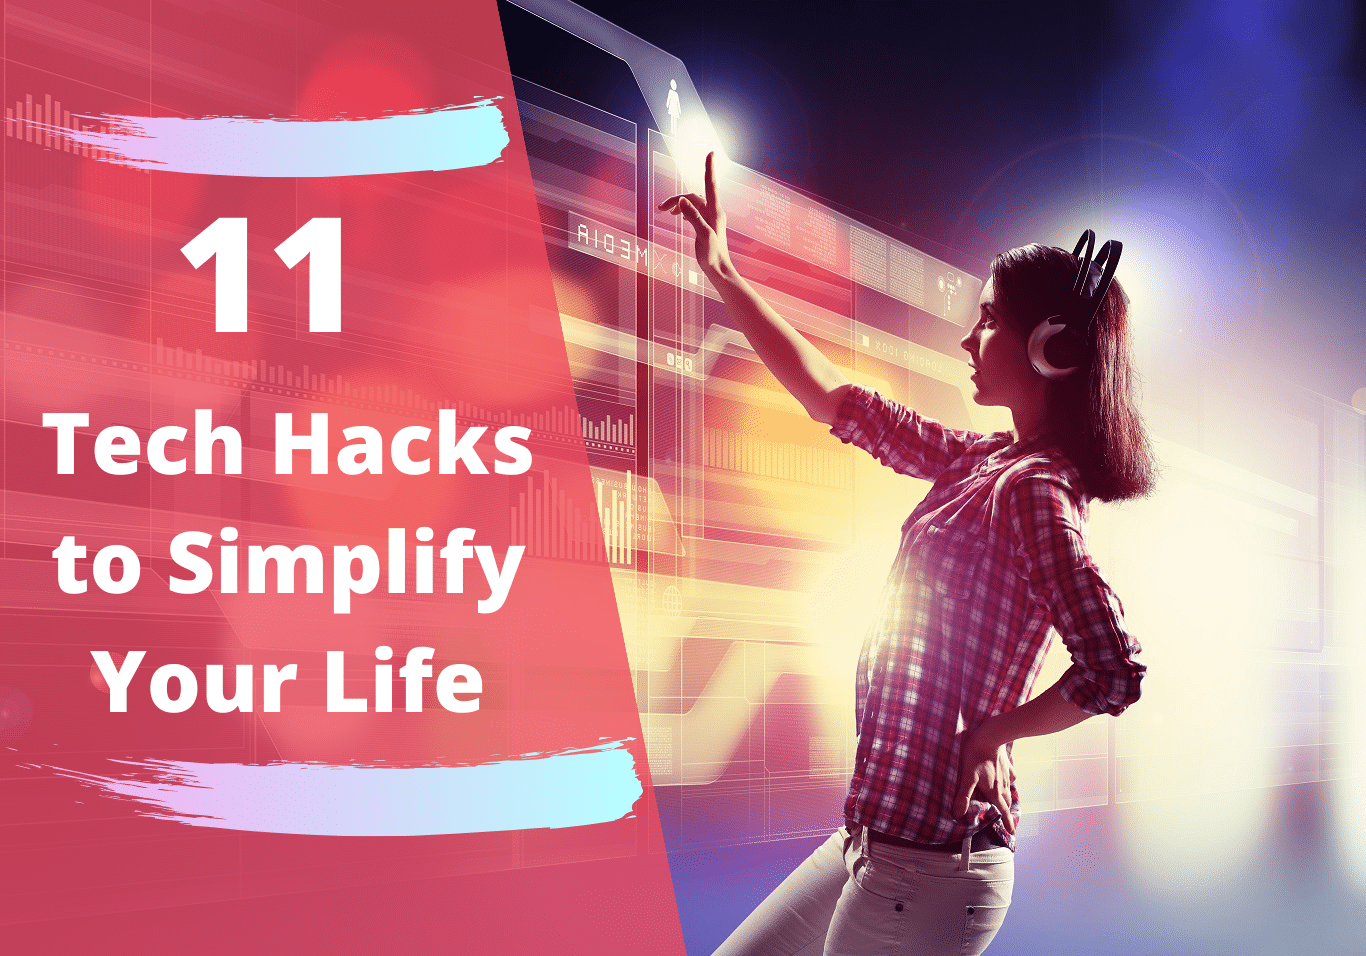 11 Tech Hacks to Simplify Your Life